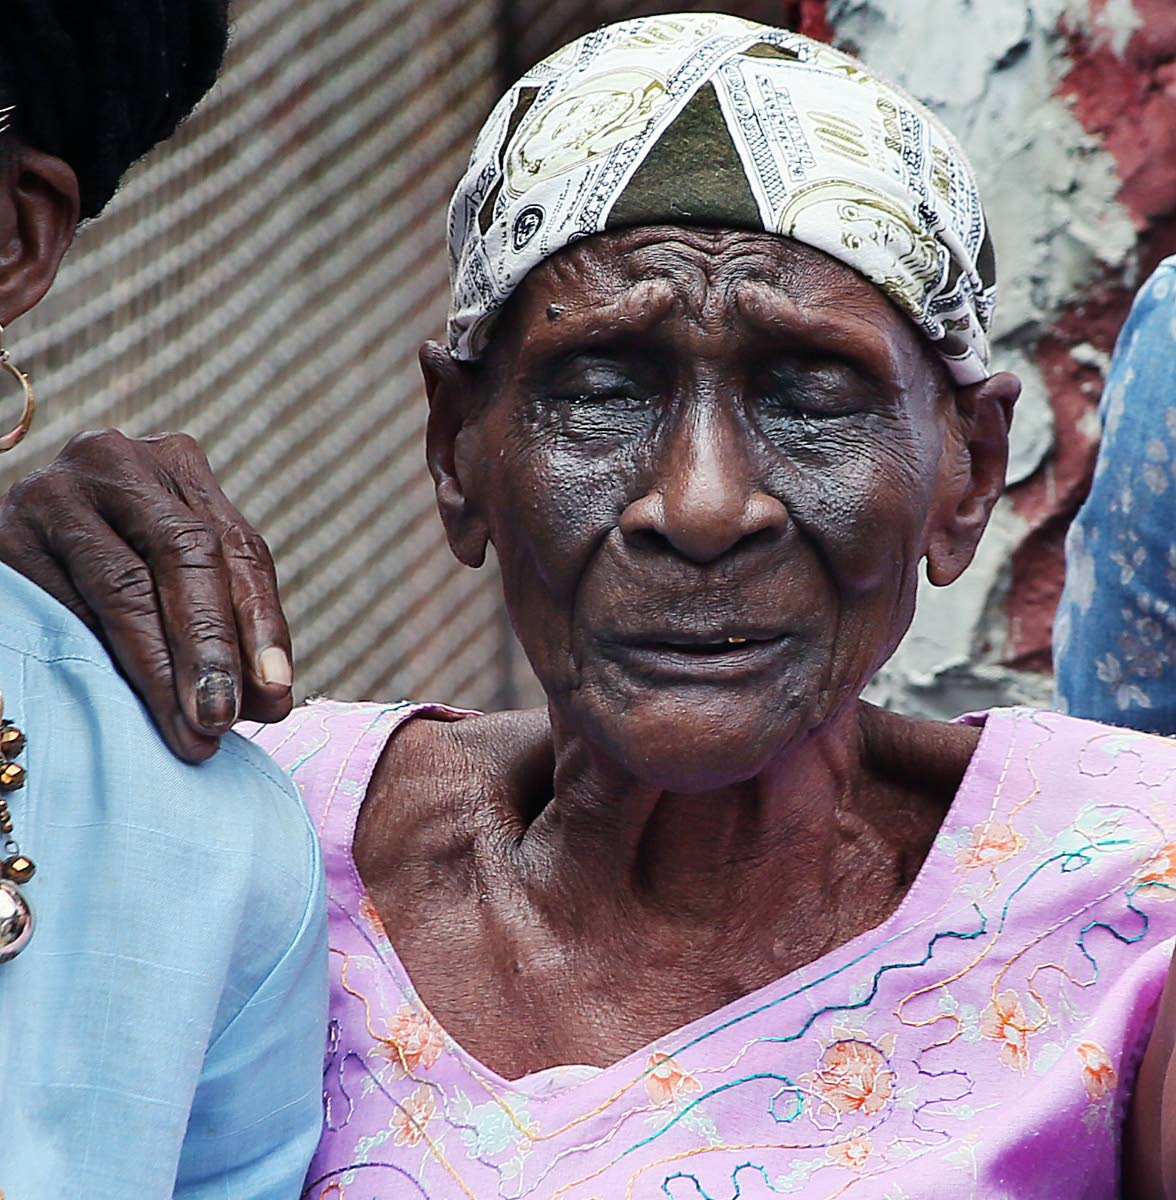 SORROW: Geraldine Baptiste, 94, weeps for James when his body was brought to her home for a final viewing.